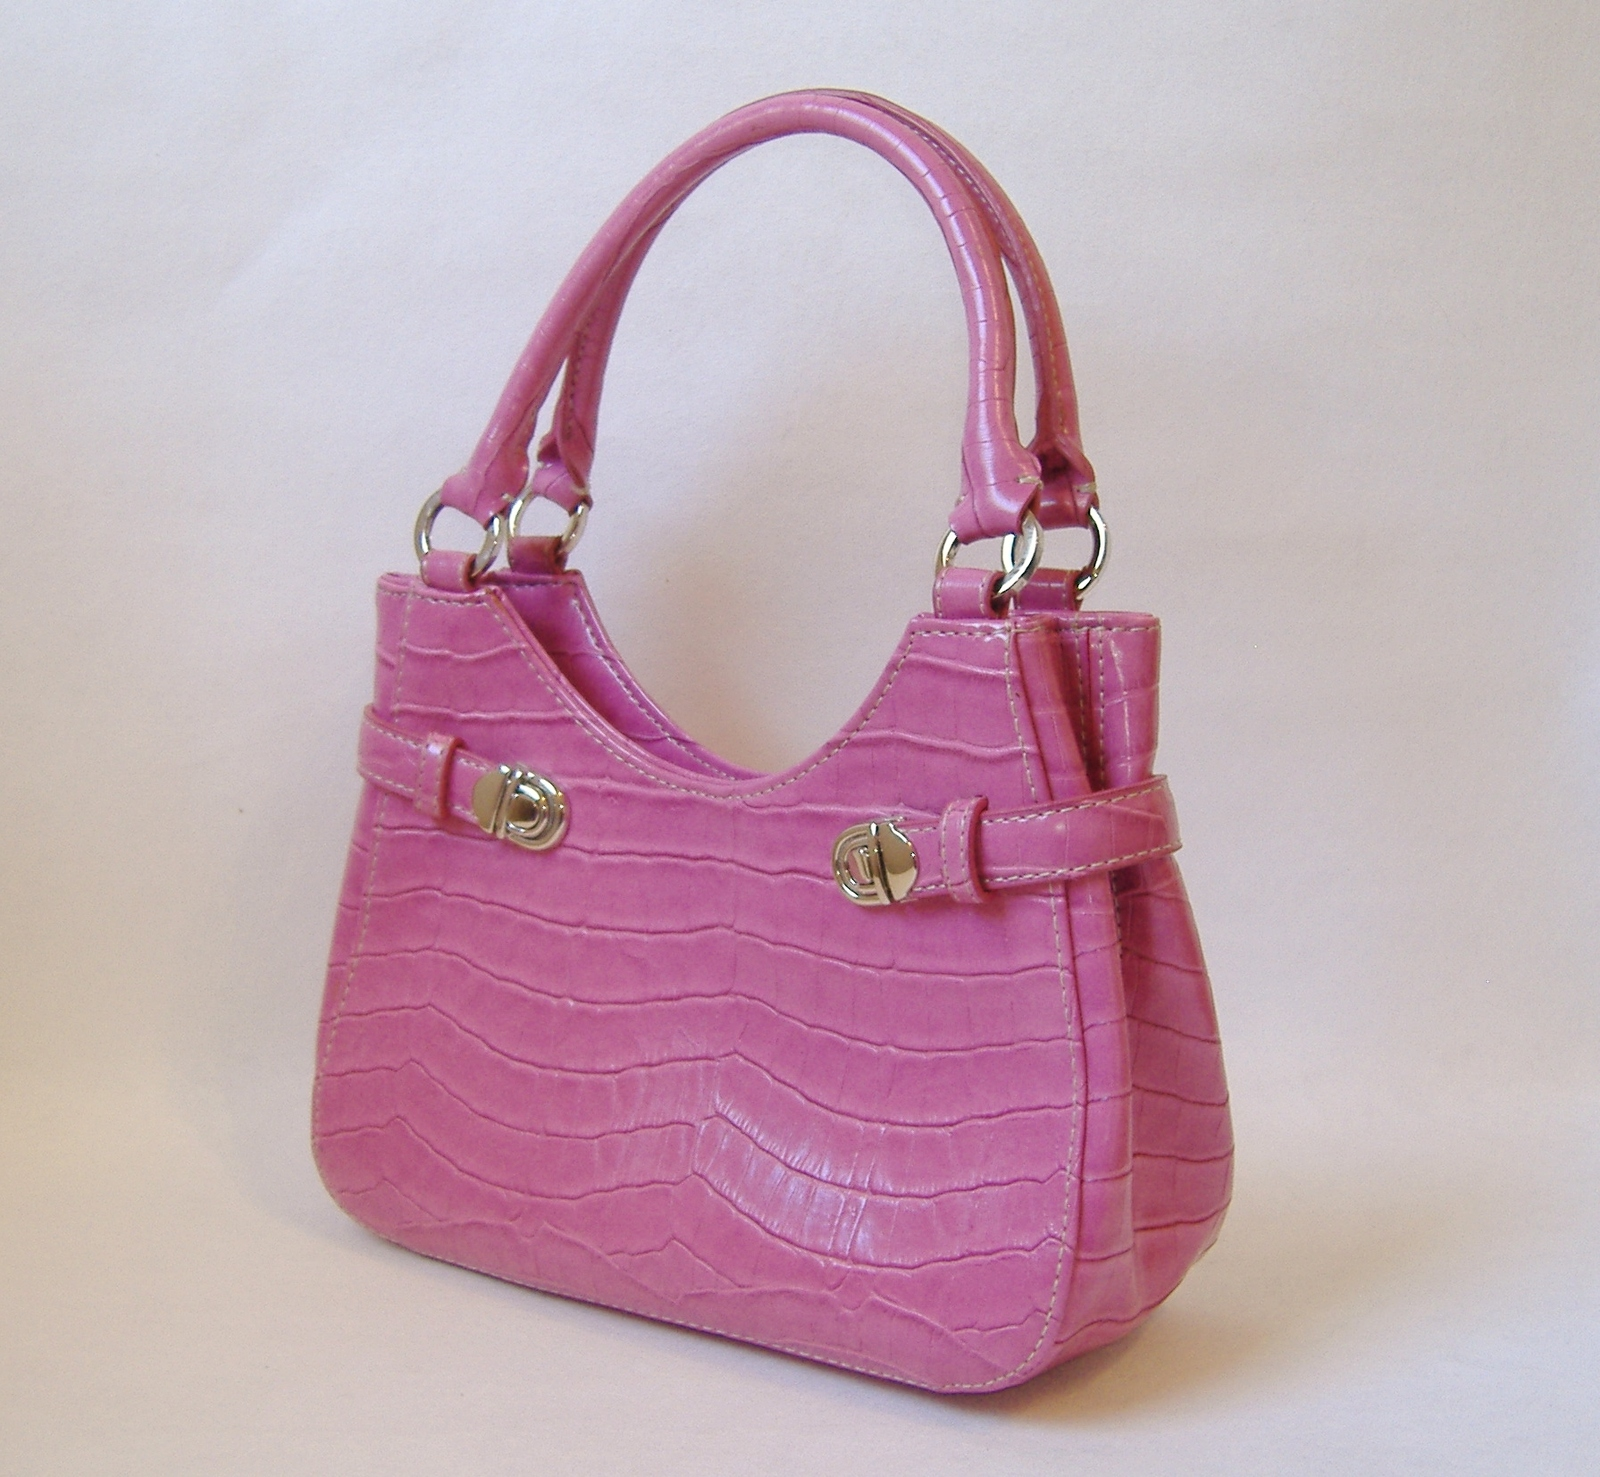 Primary image for Salmon Pink Charter Club Purse Handbag Faux Crocodile Lined Silver Metal Tote